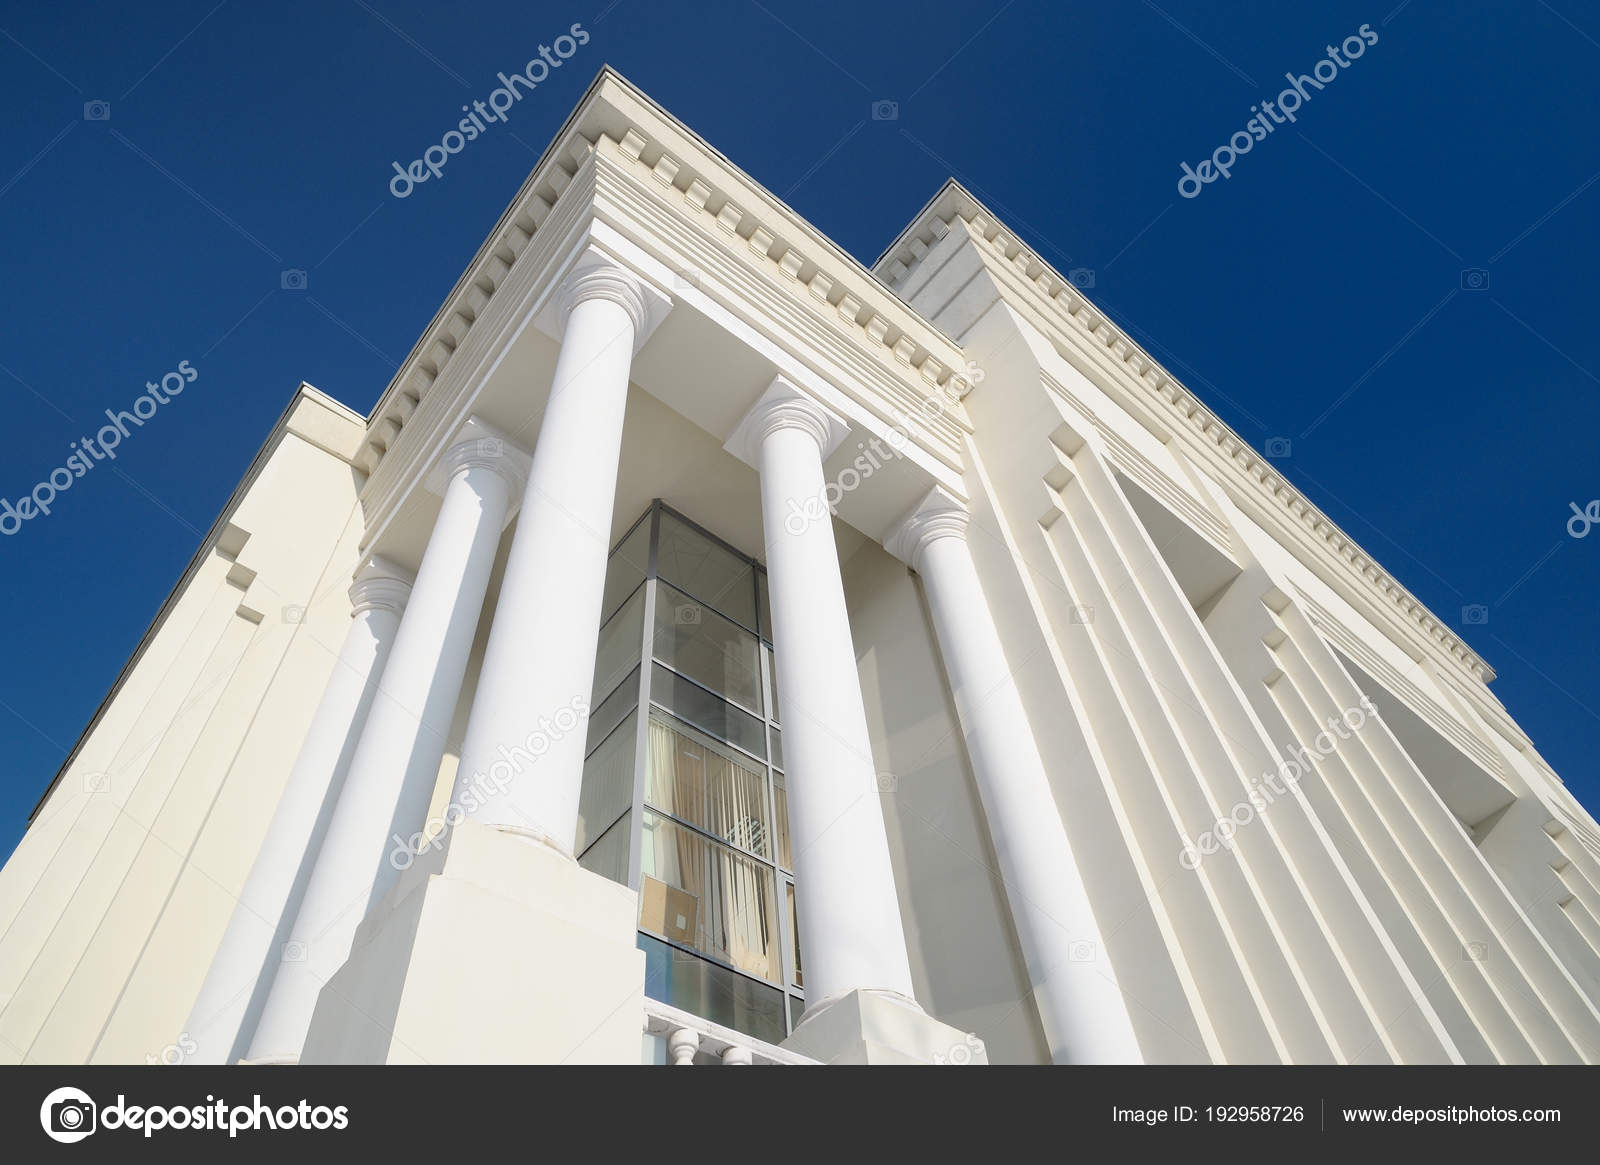 Classic style white building facade detail with pillars against clear blue sky modern architecture stock image